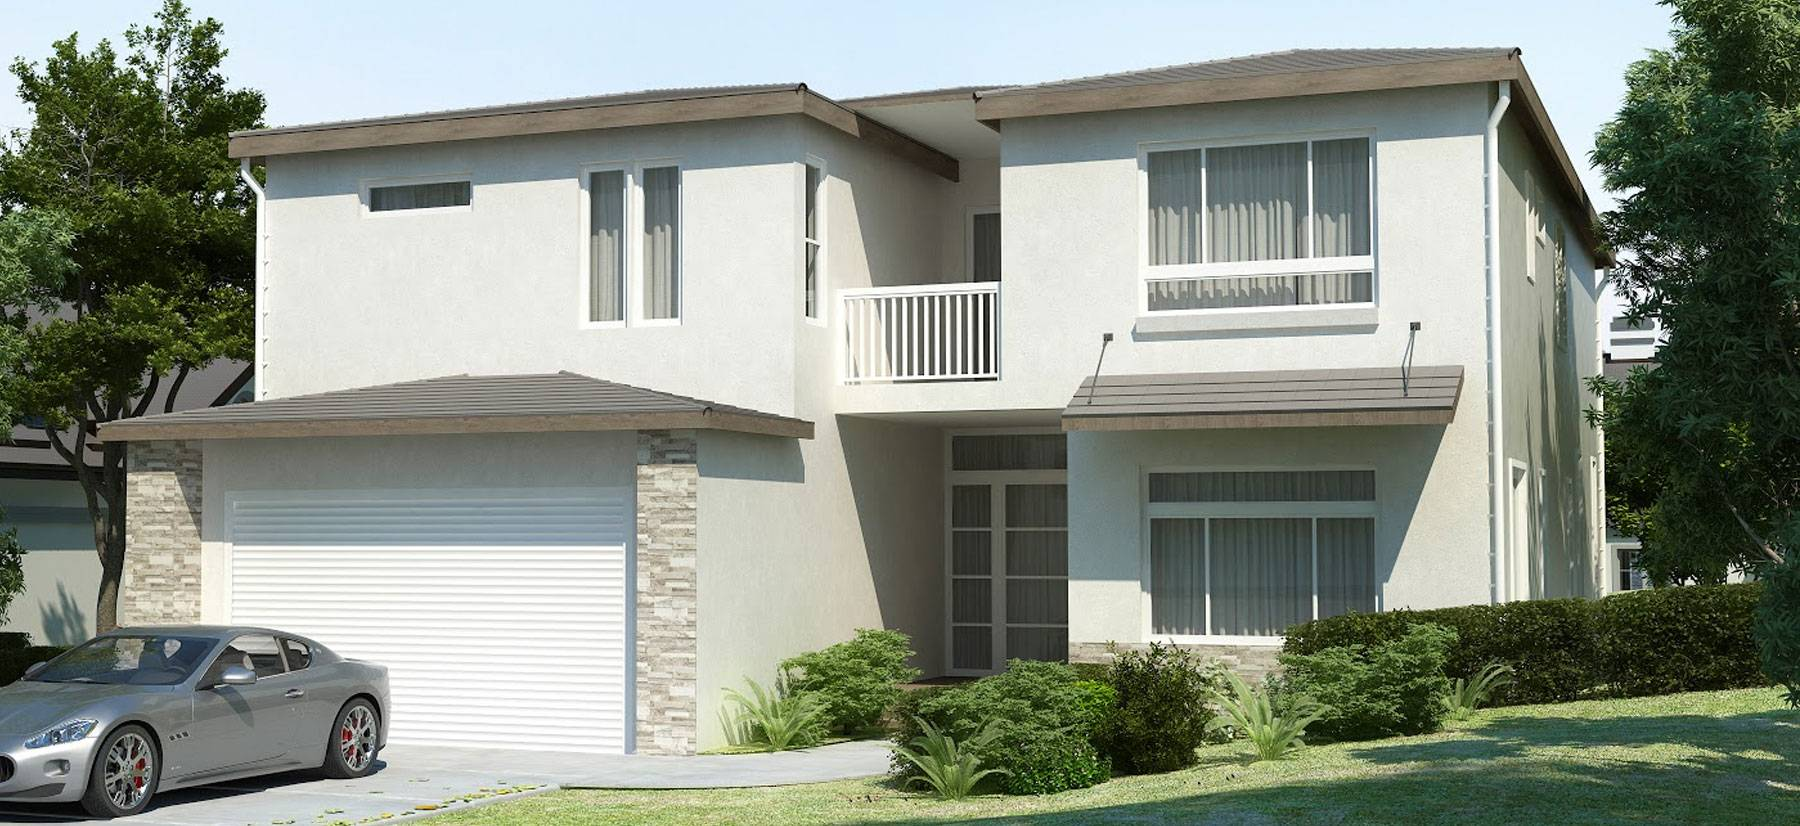 sample single-family housing project by the City government of San Jose